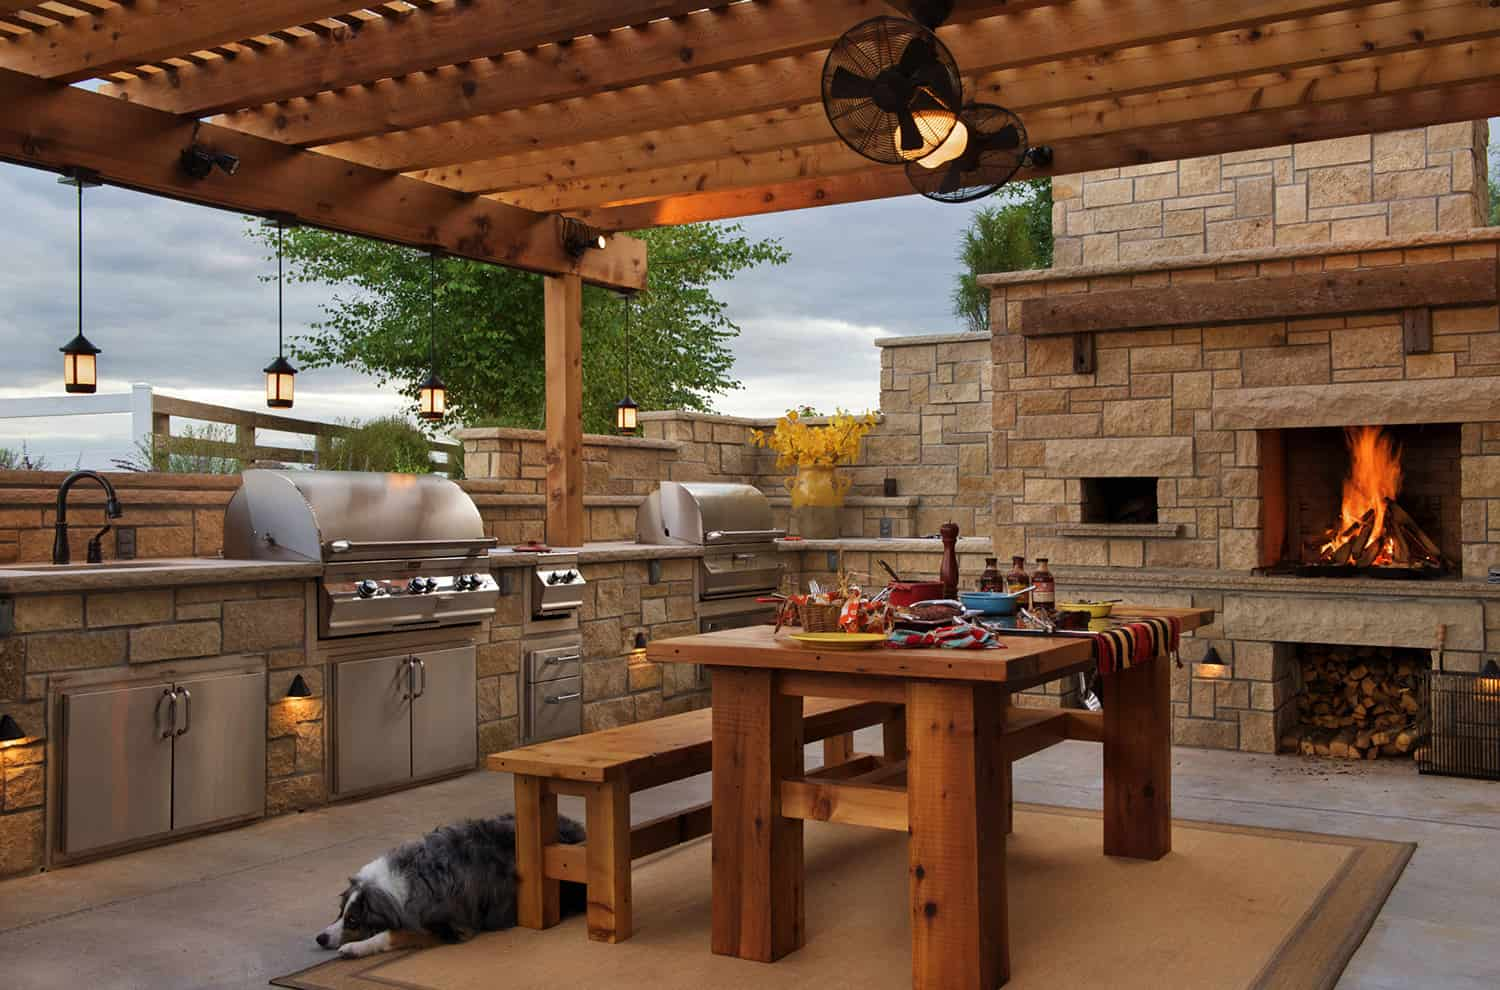 farmhouse-patio-kitchen-with-a-pizza-oven